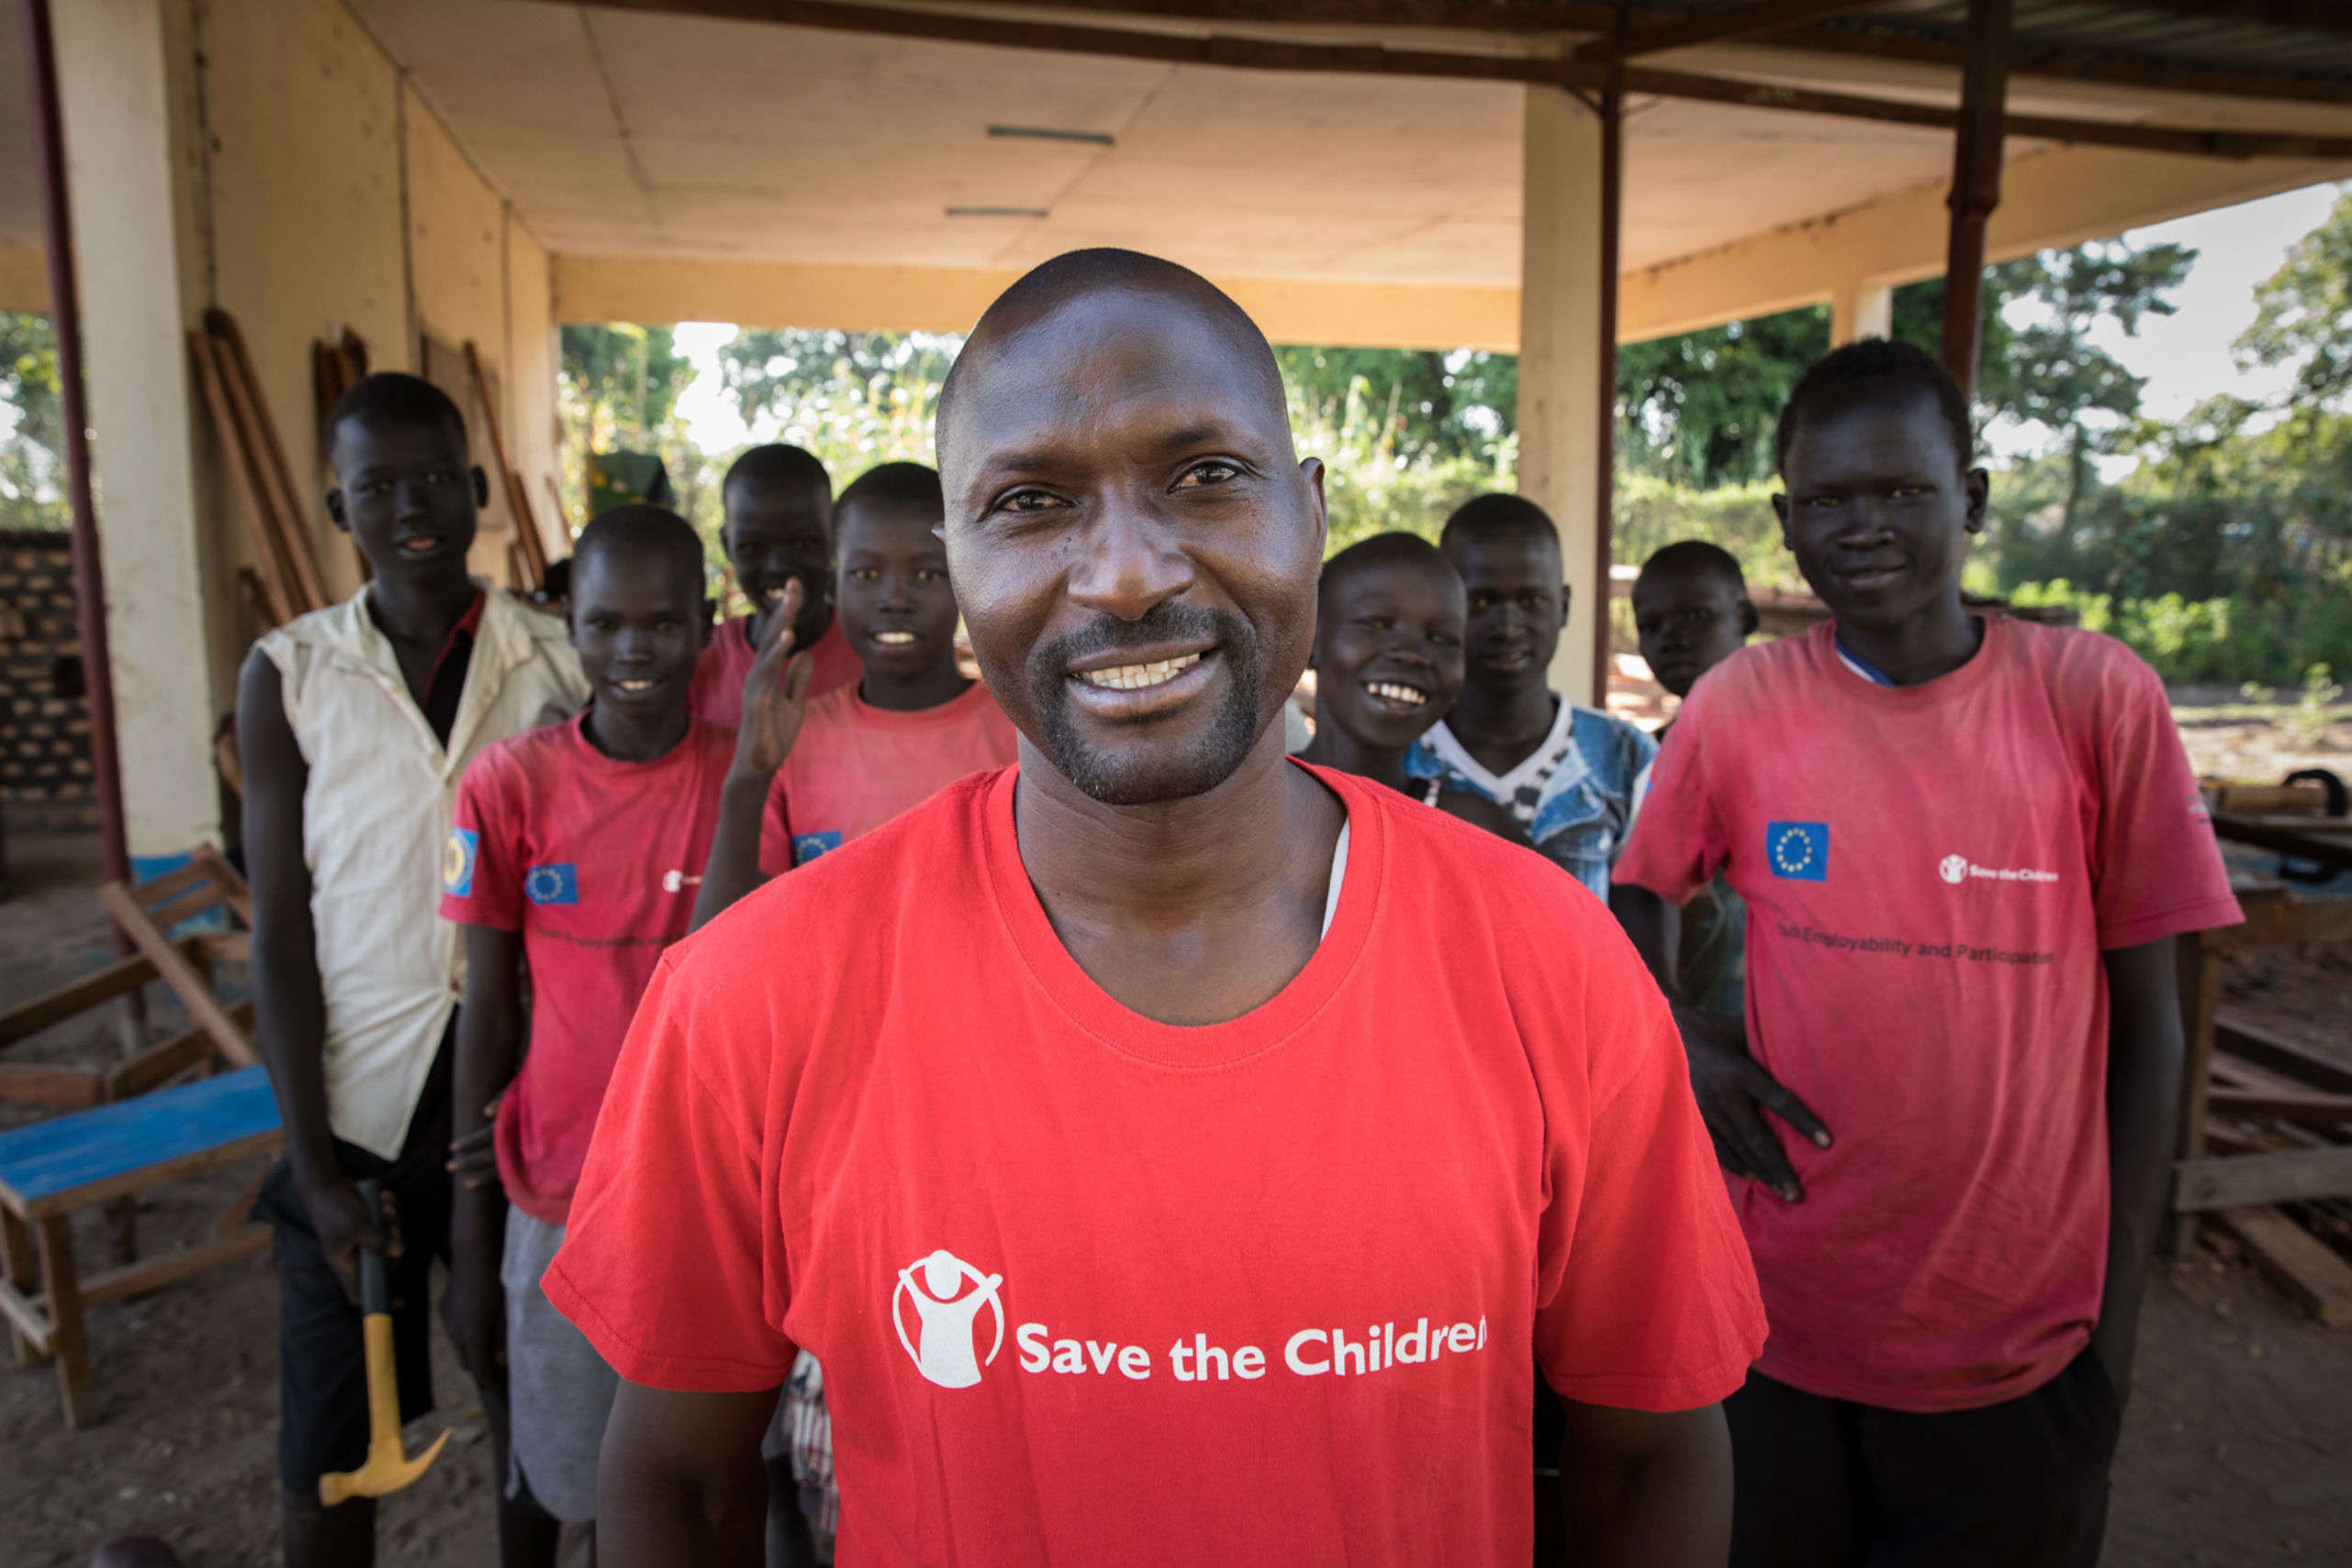 michael, a save the children project manager in South Sudan